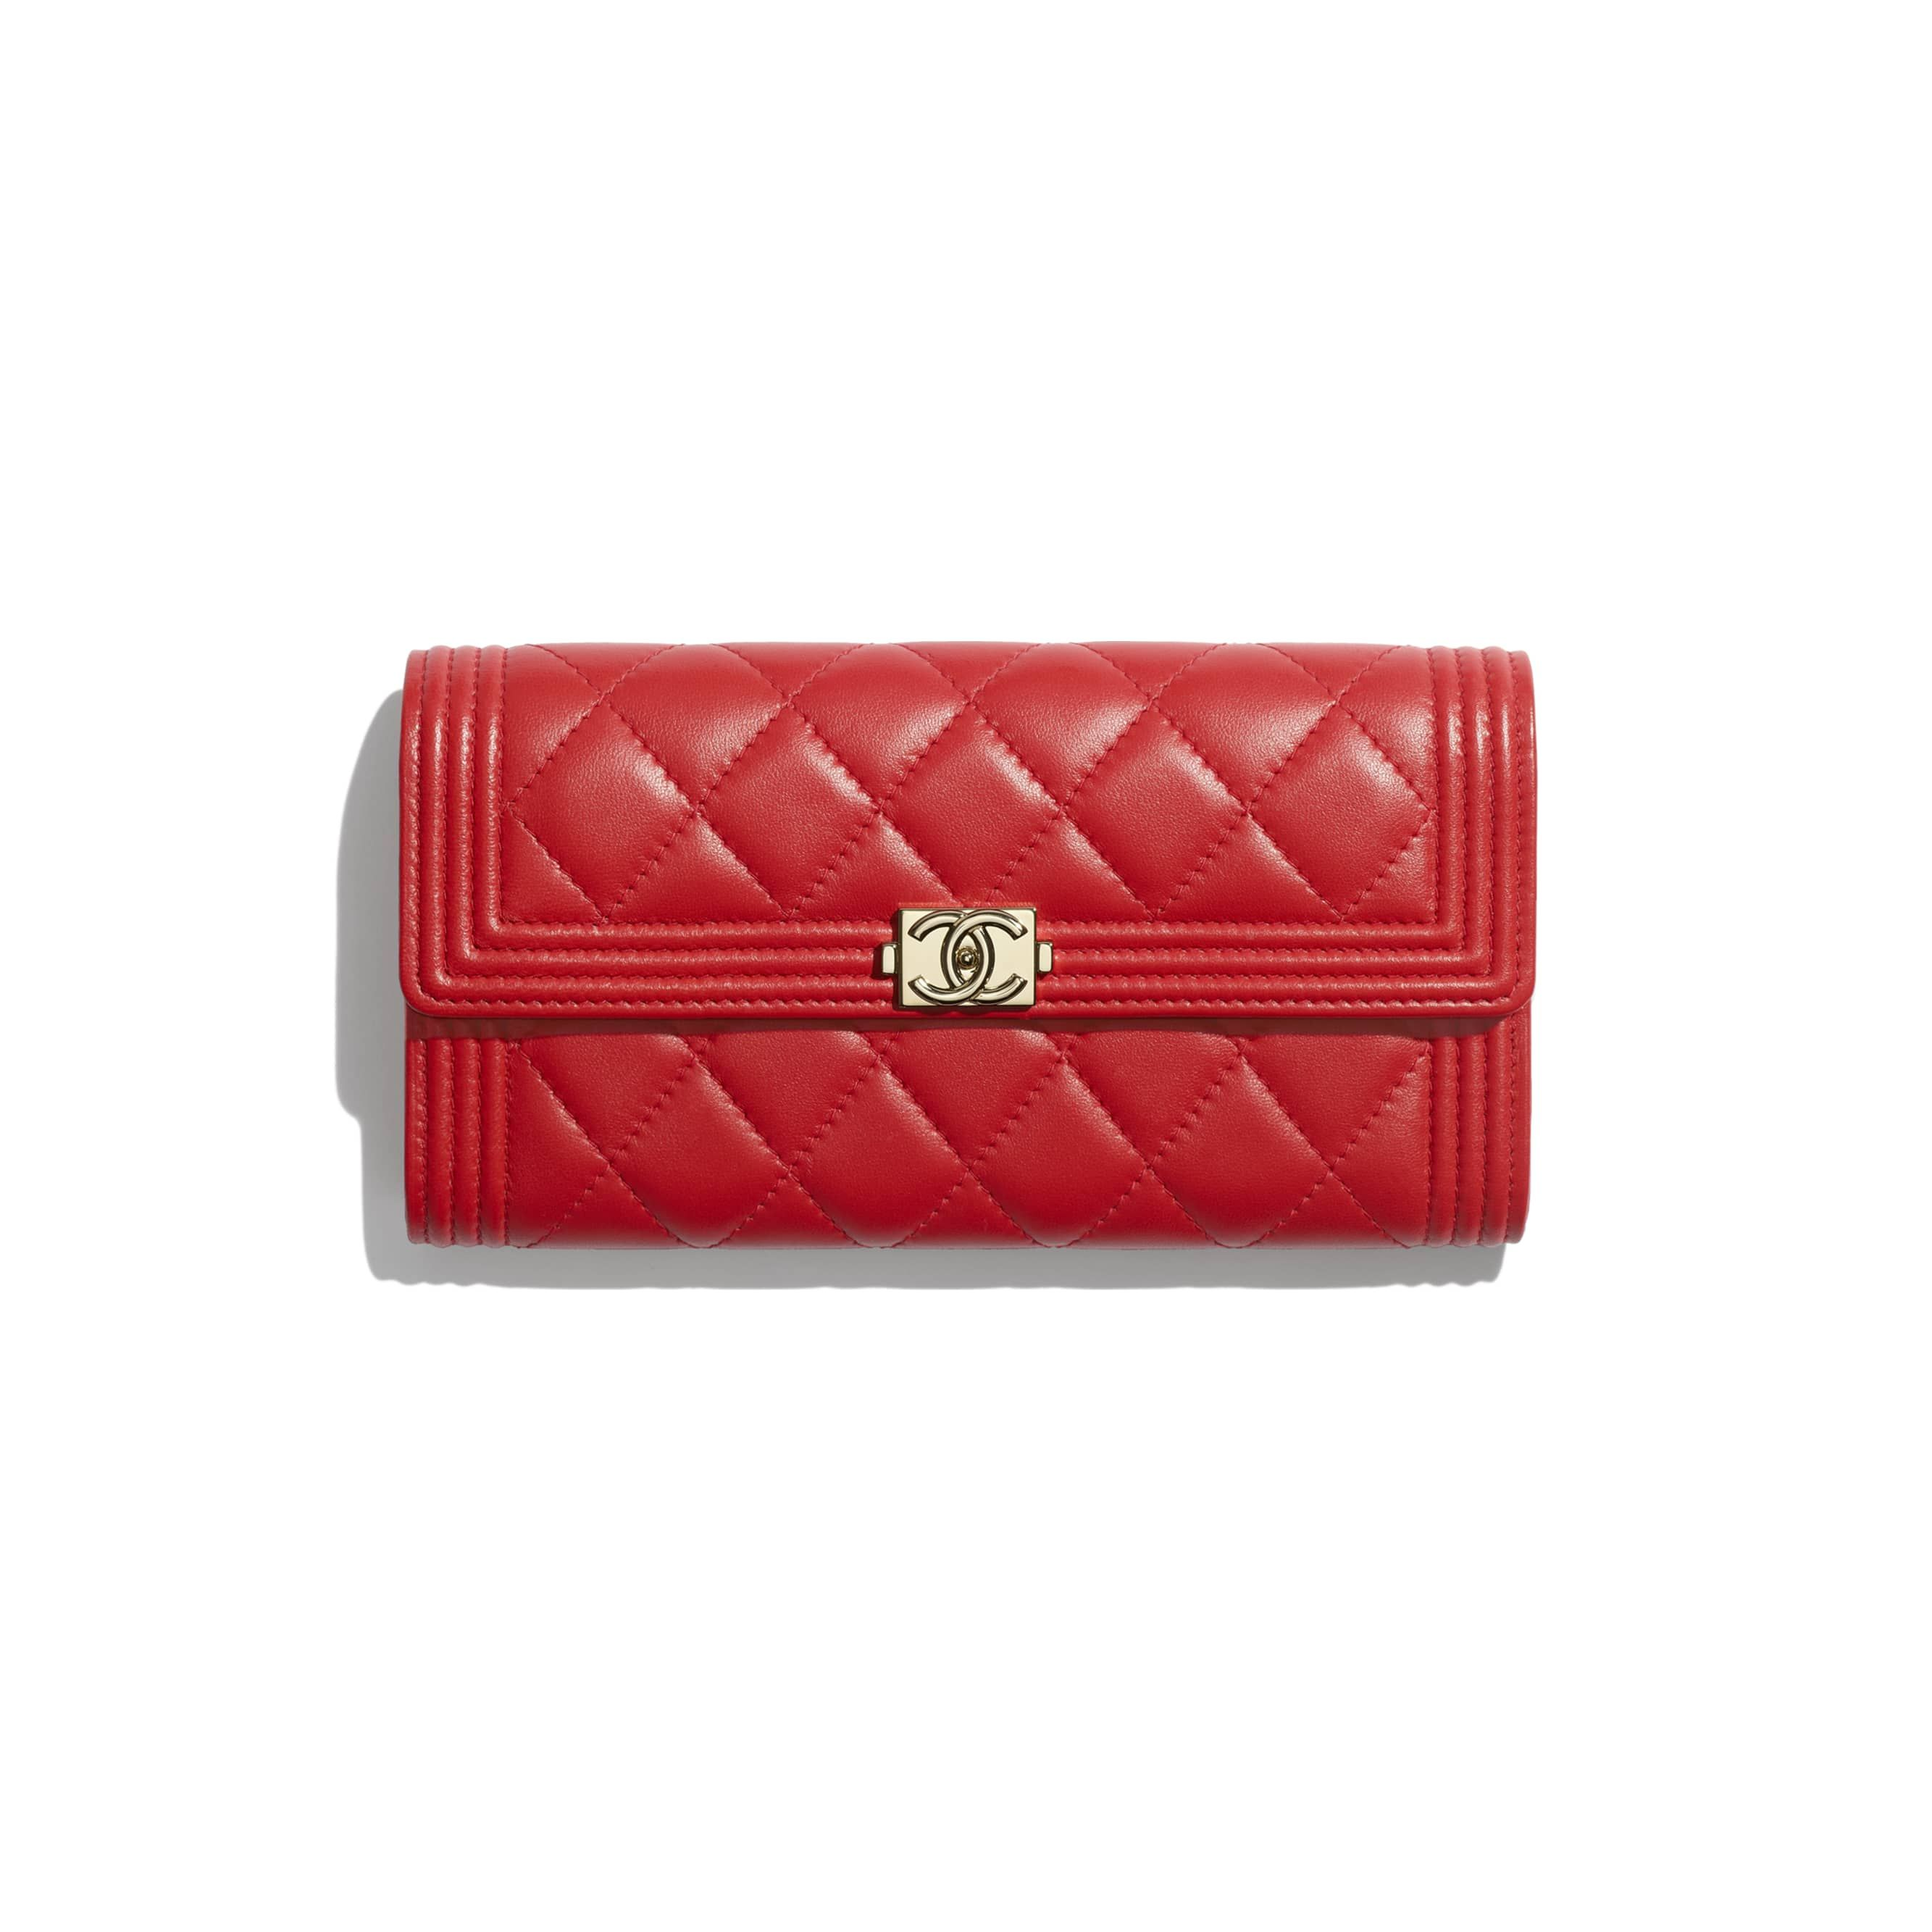 6cd16c540df161 BOY CHANEL Long Flap Wallet - Red - Lambskin & Gold-Tone Metal - Default  view - see standard sized version